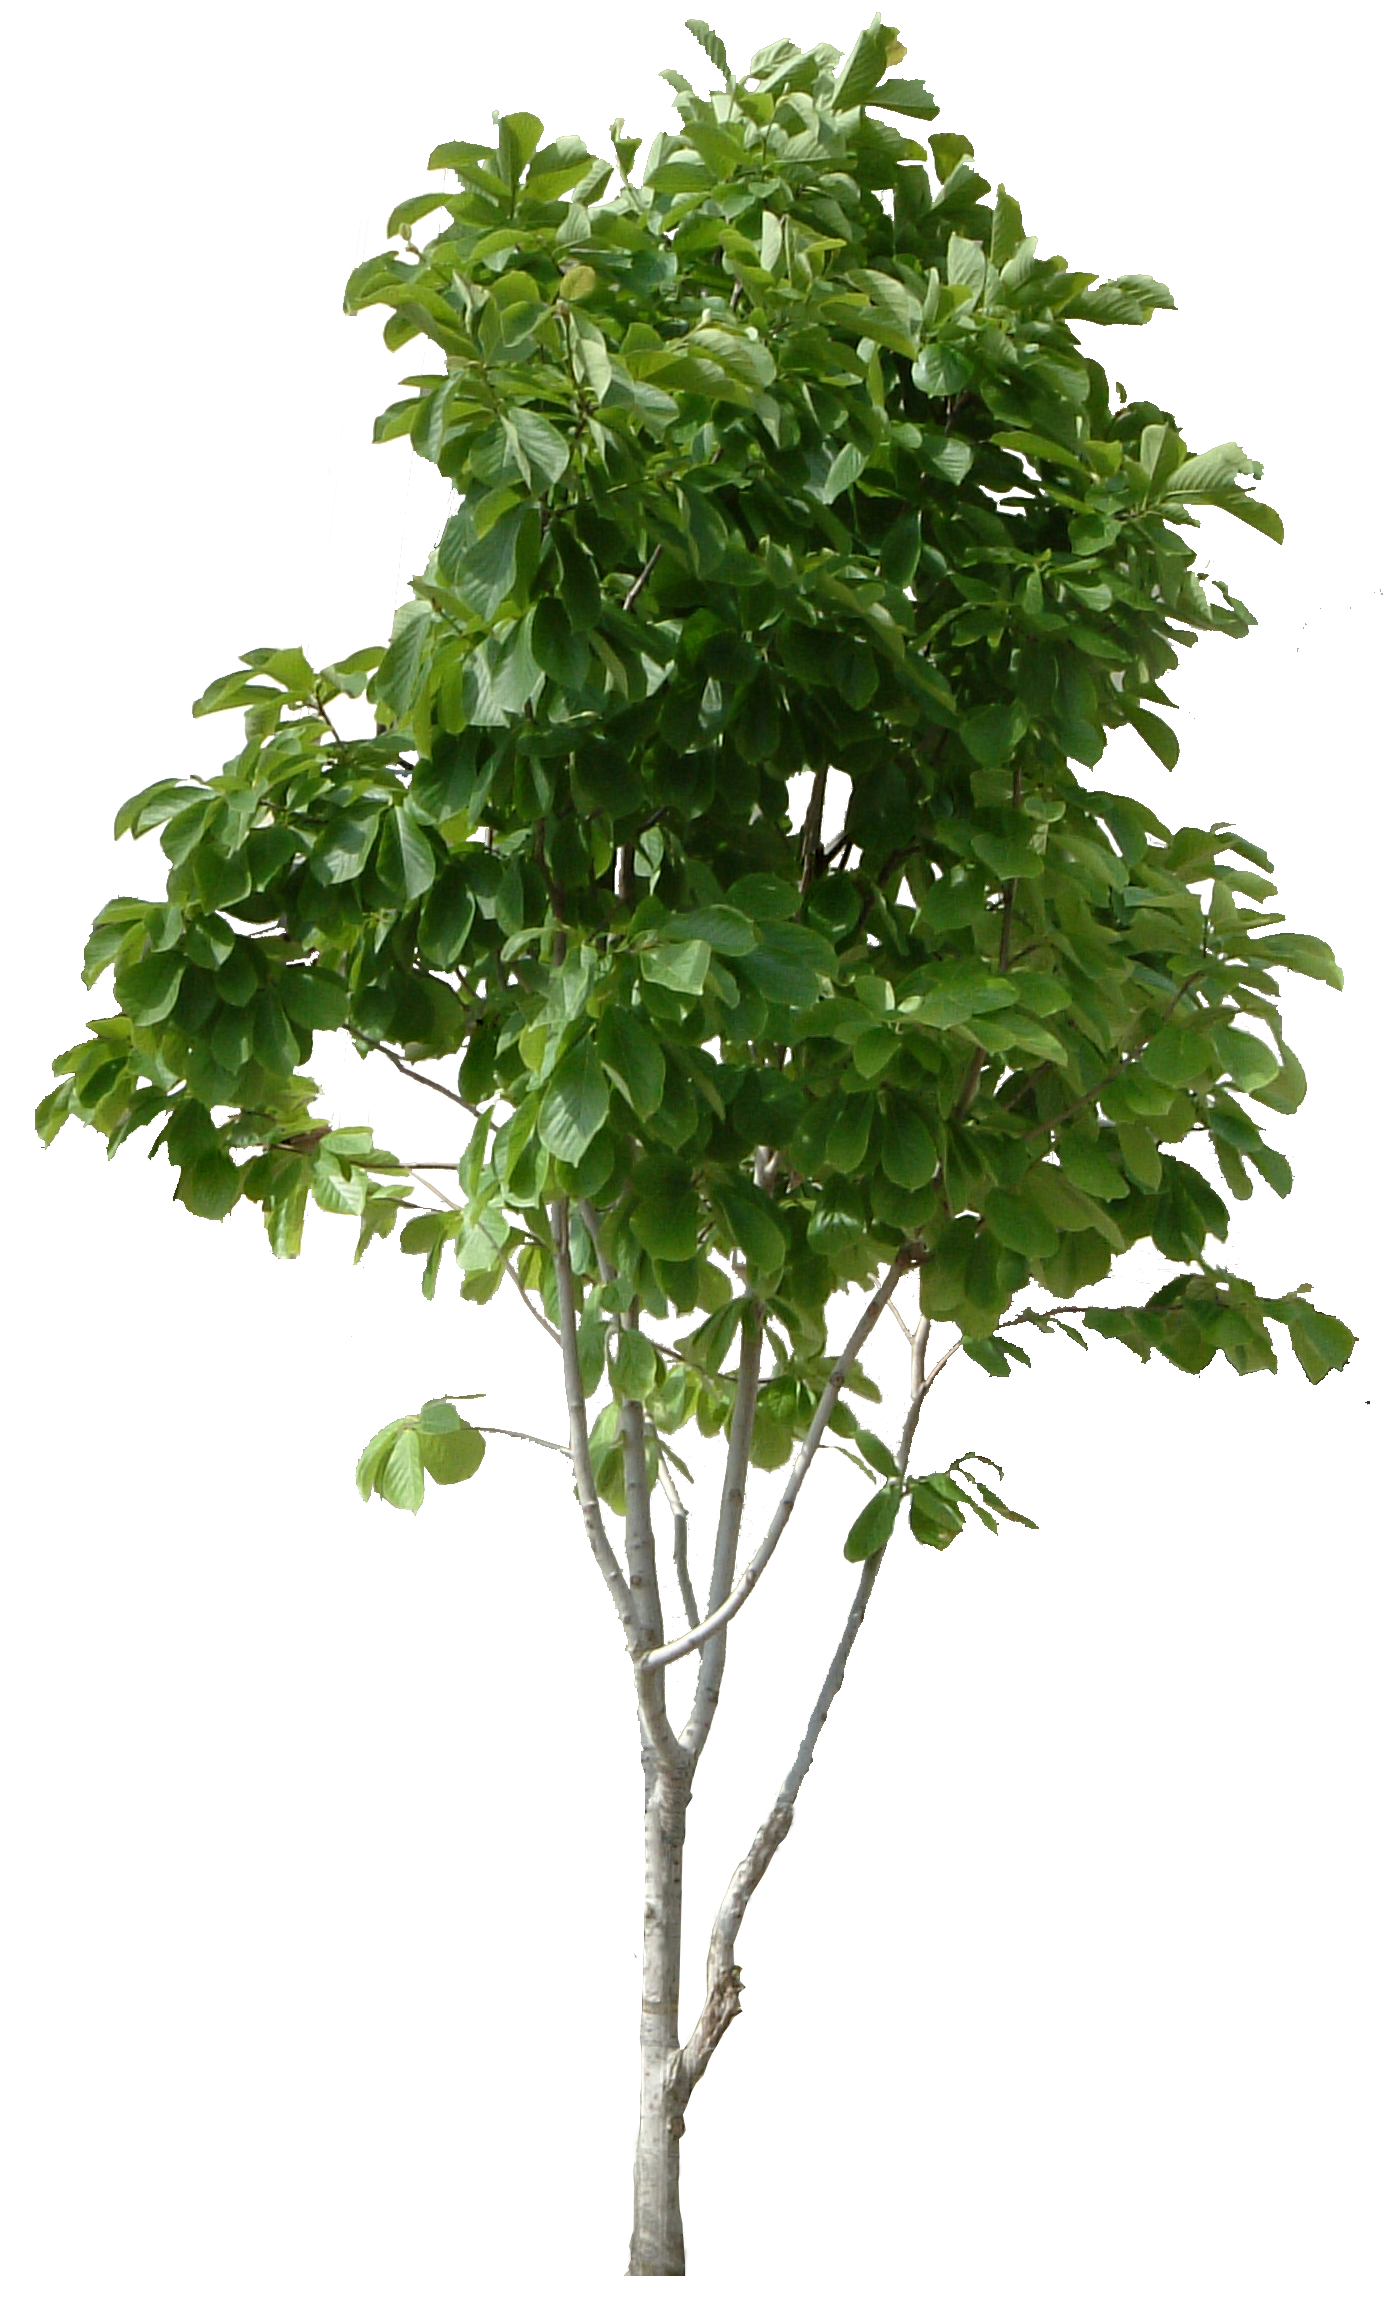 Hd tree cool b. Free png images for photoshop